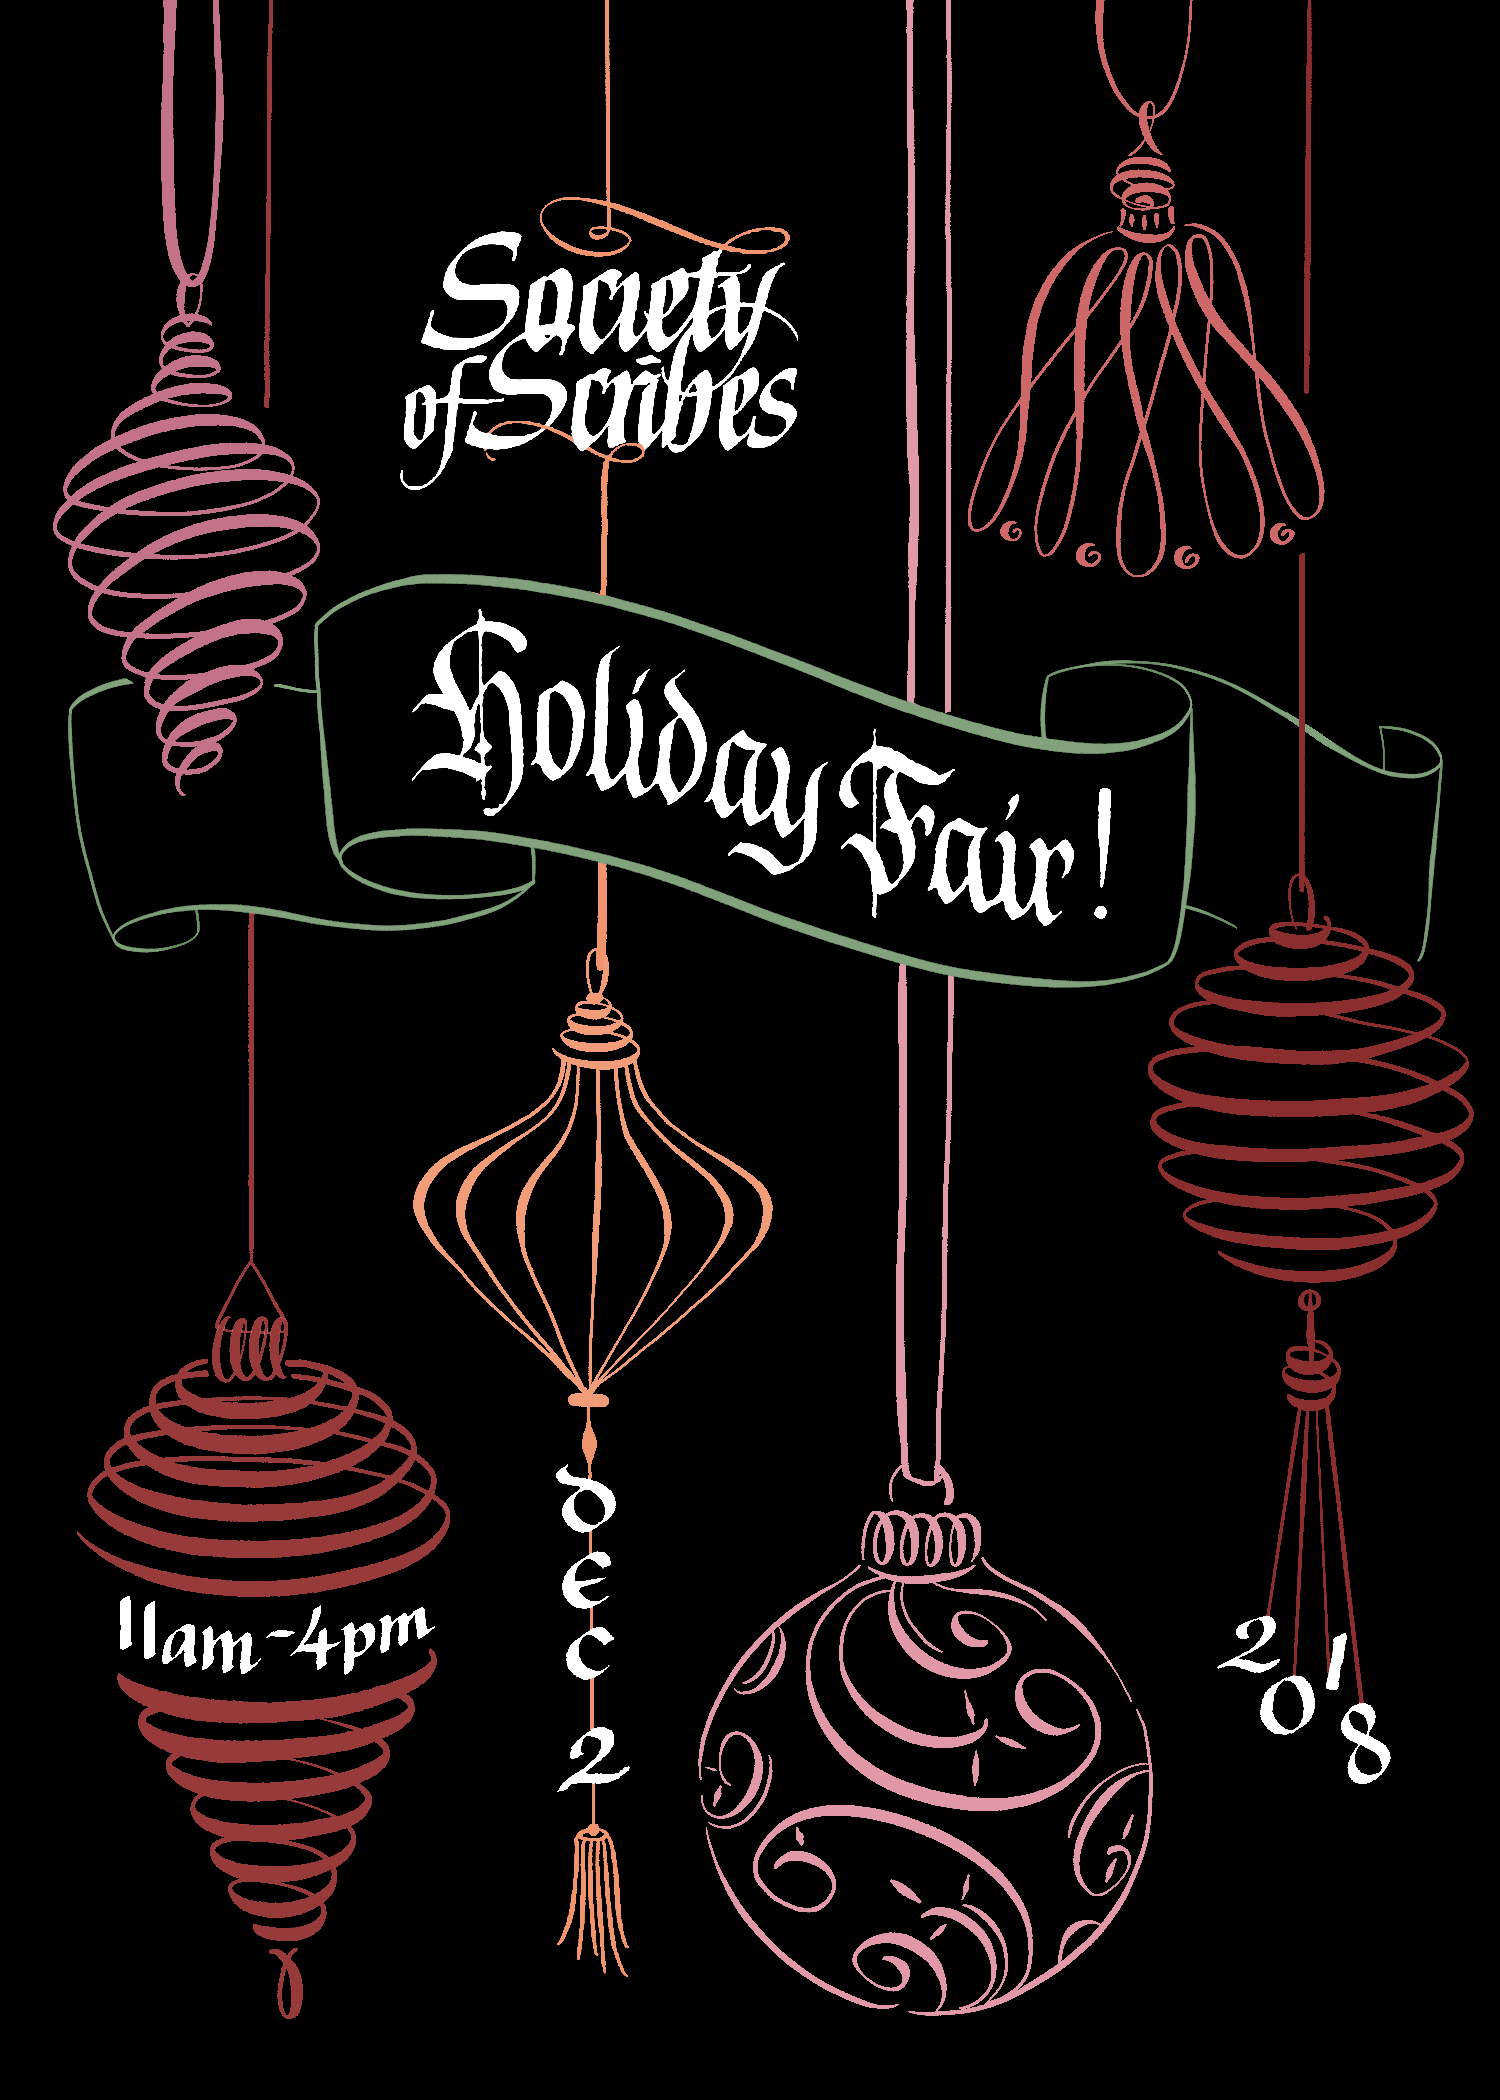 Society of Scribes Holiday Fair postcard flyer. Designed entirely with calligraphic strokes and lines | by Chavelli www.chavelli.com